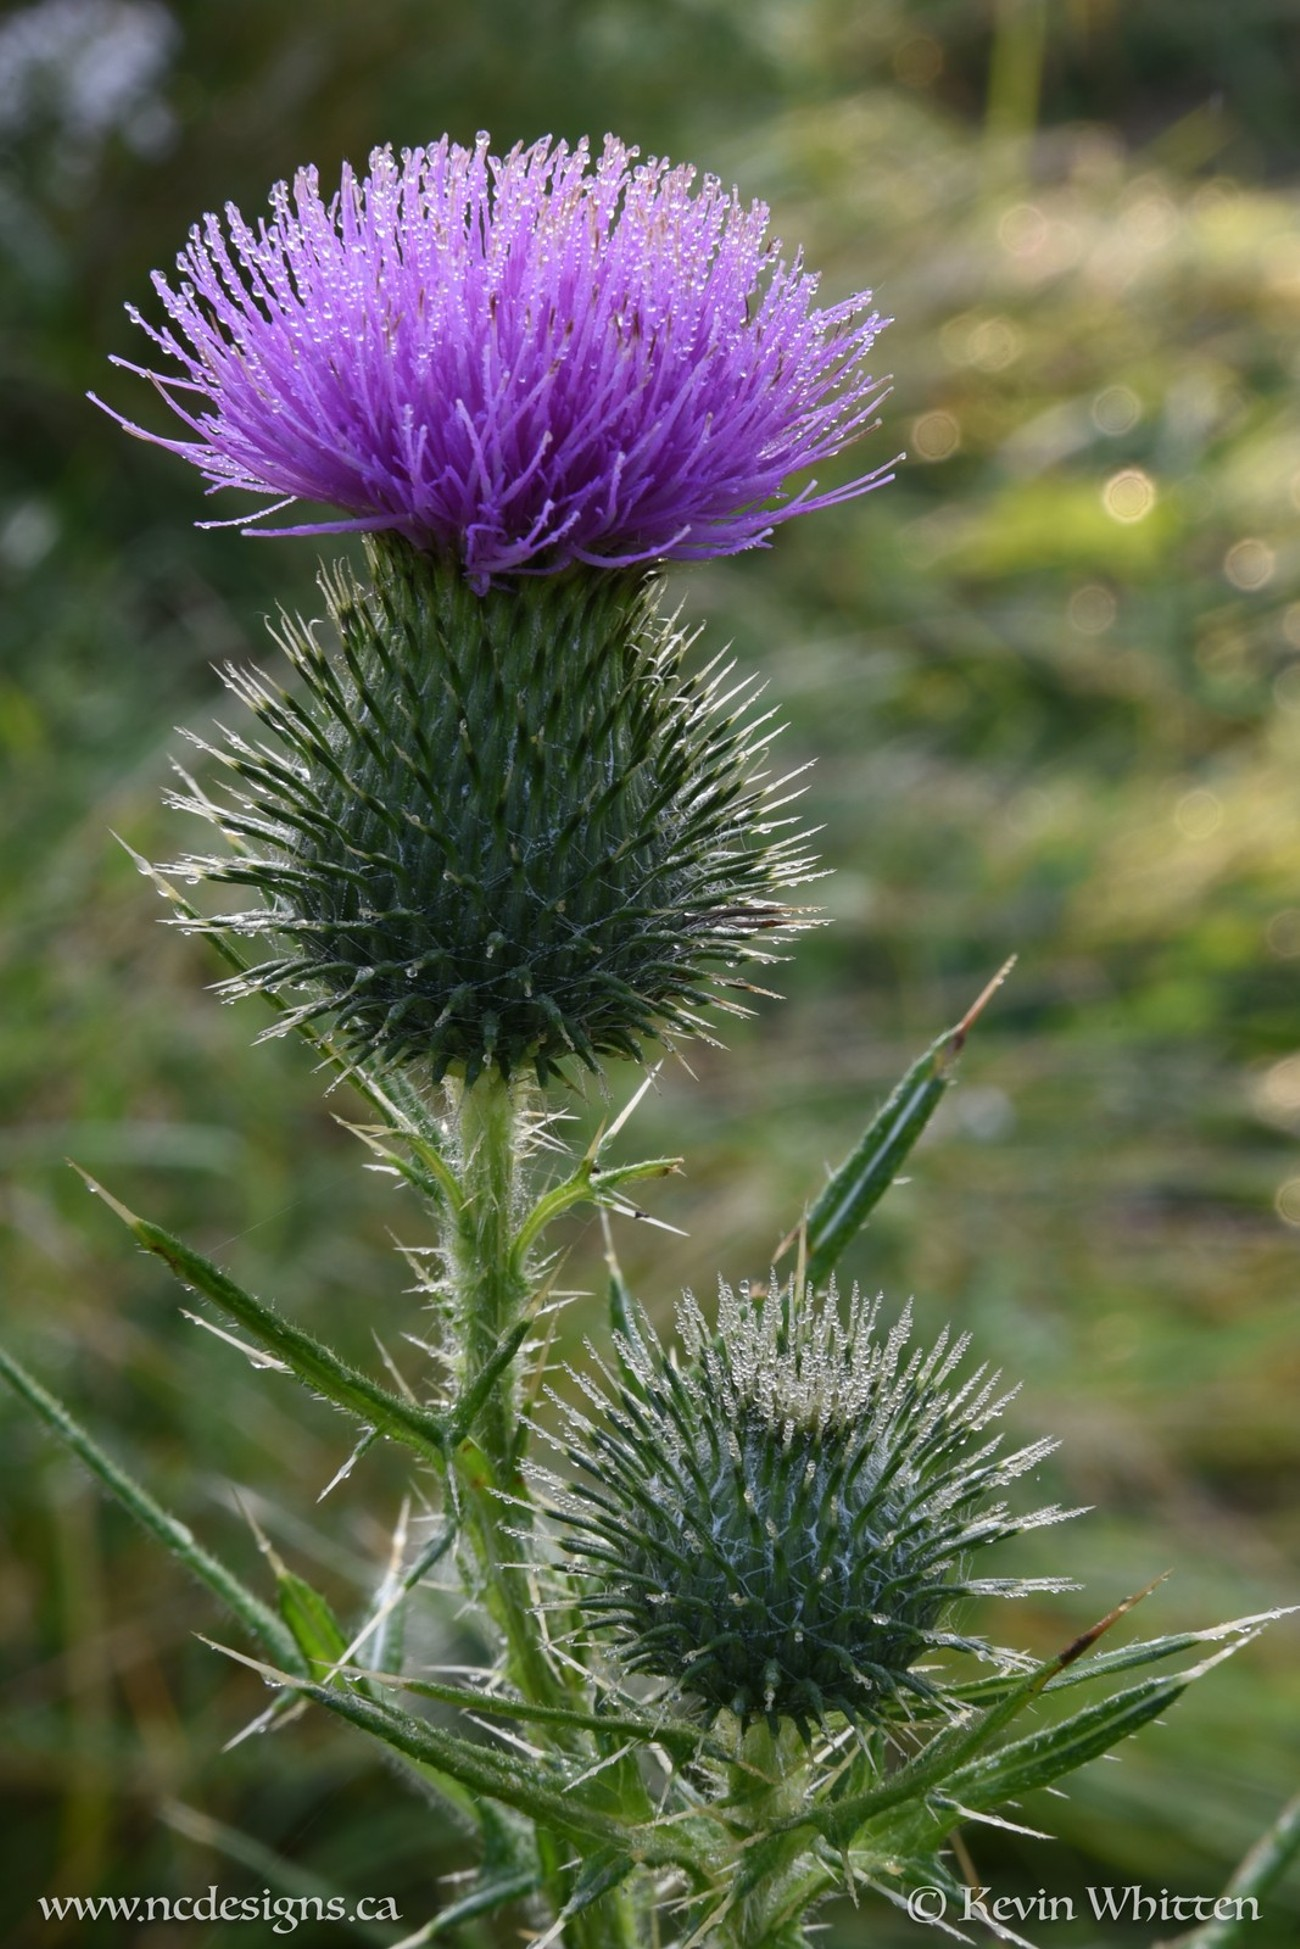 Glistening morning dew off a thistle flower